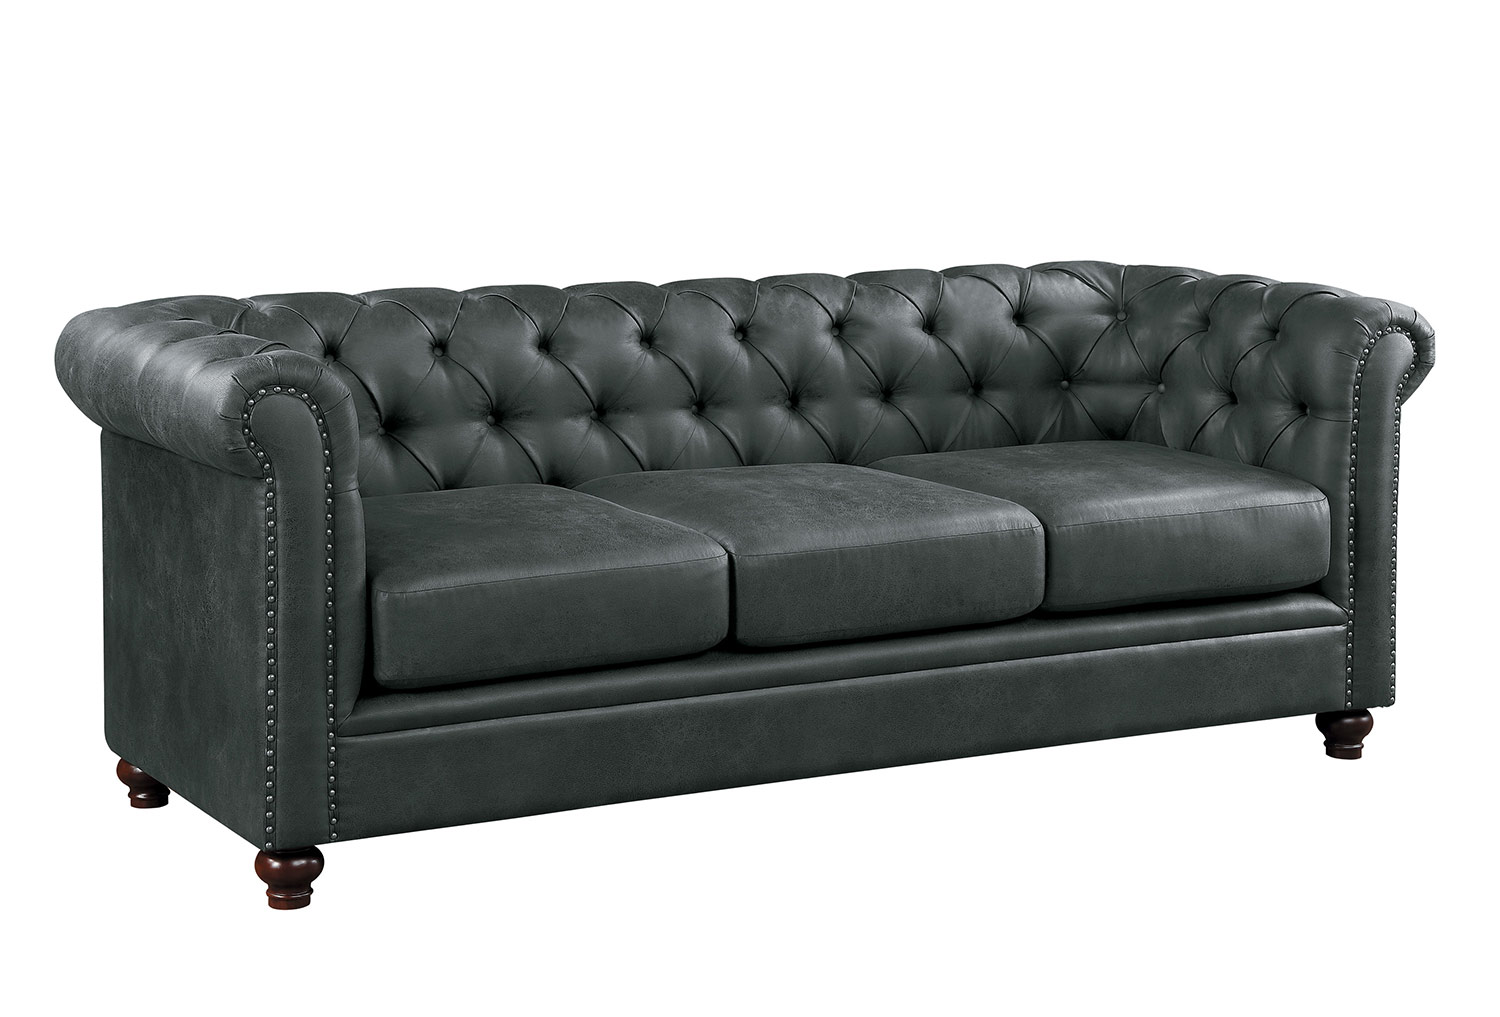 Homelegance Wallstone Sofa - Gray